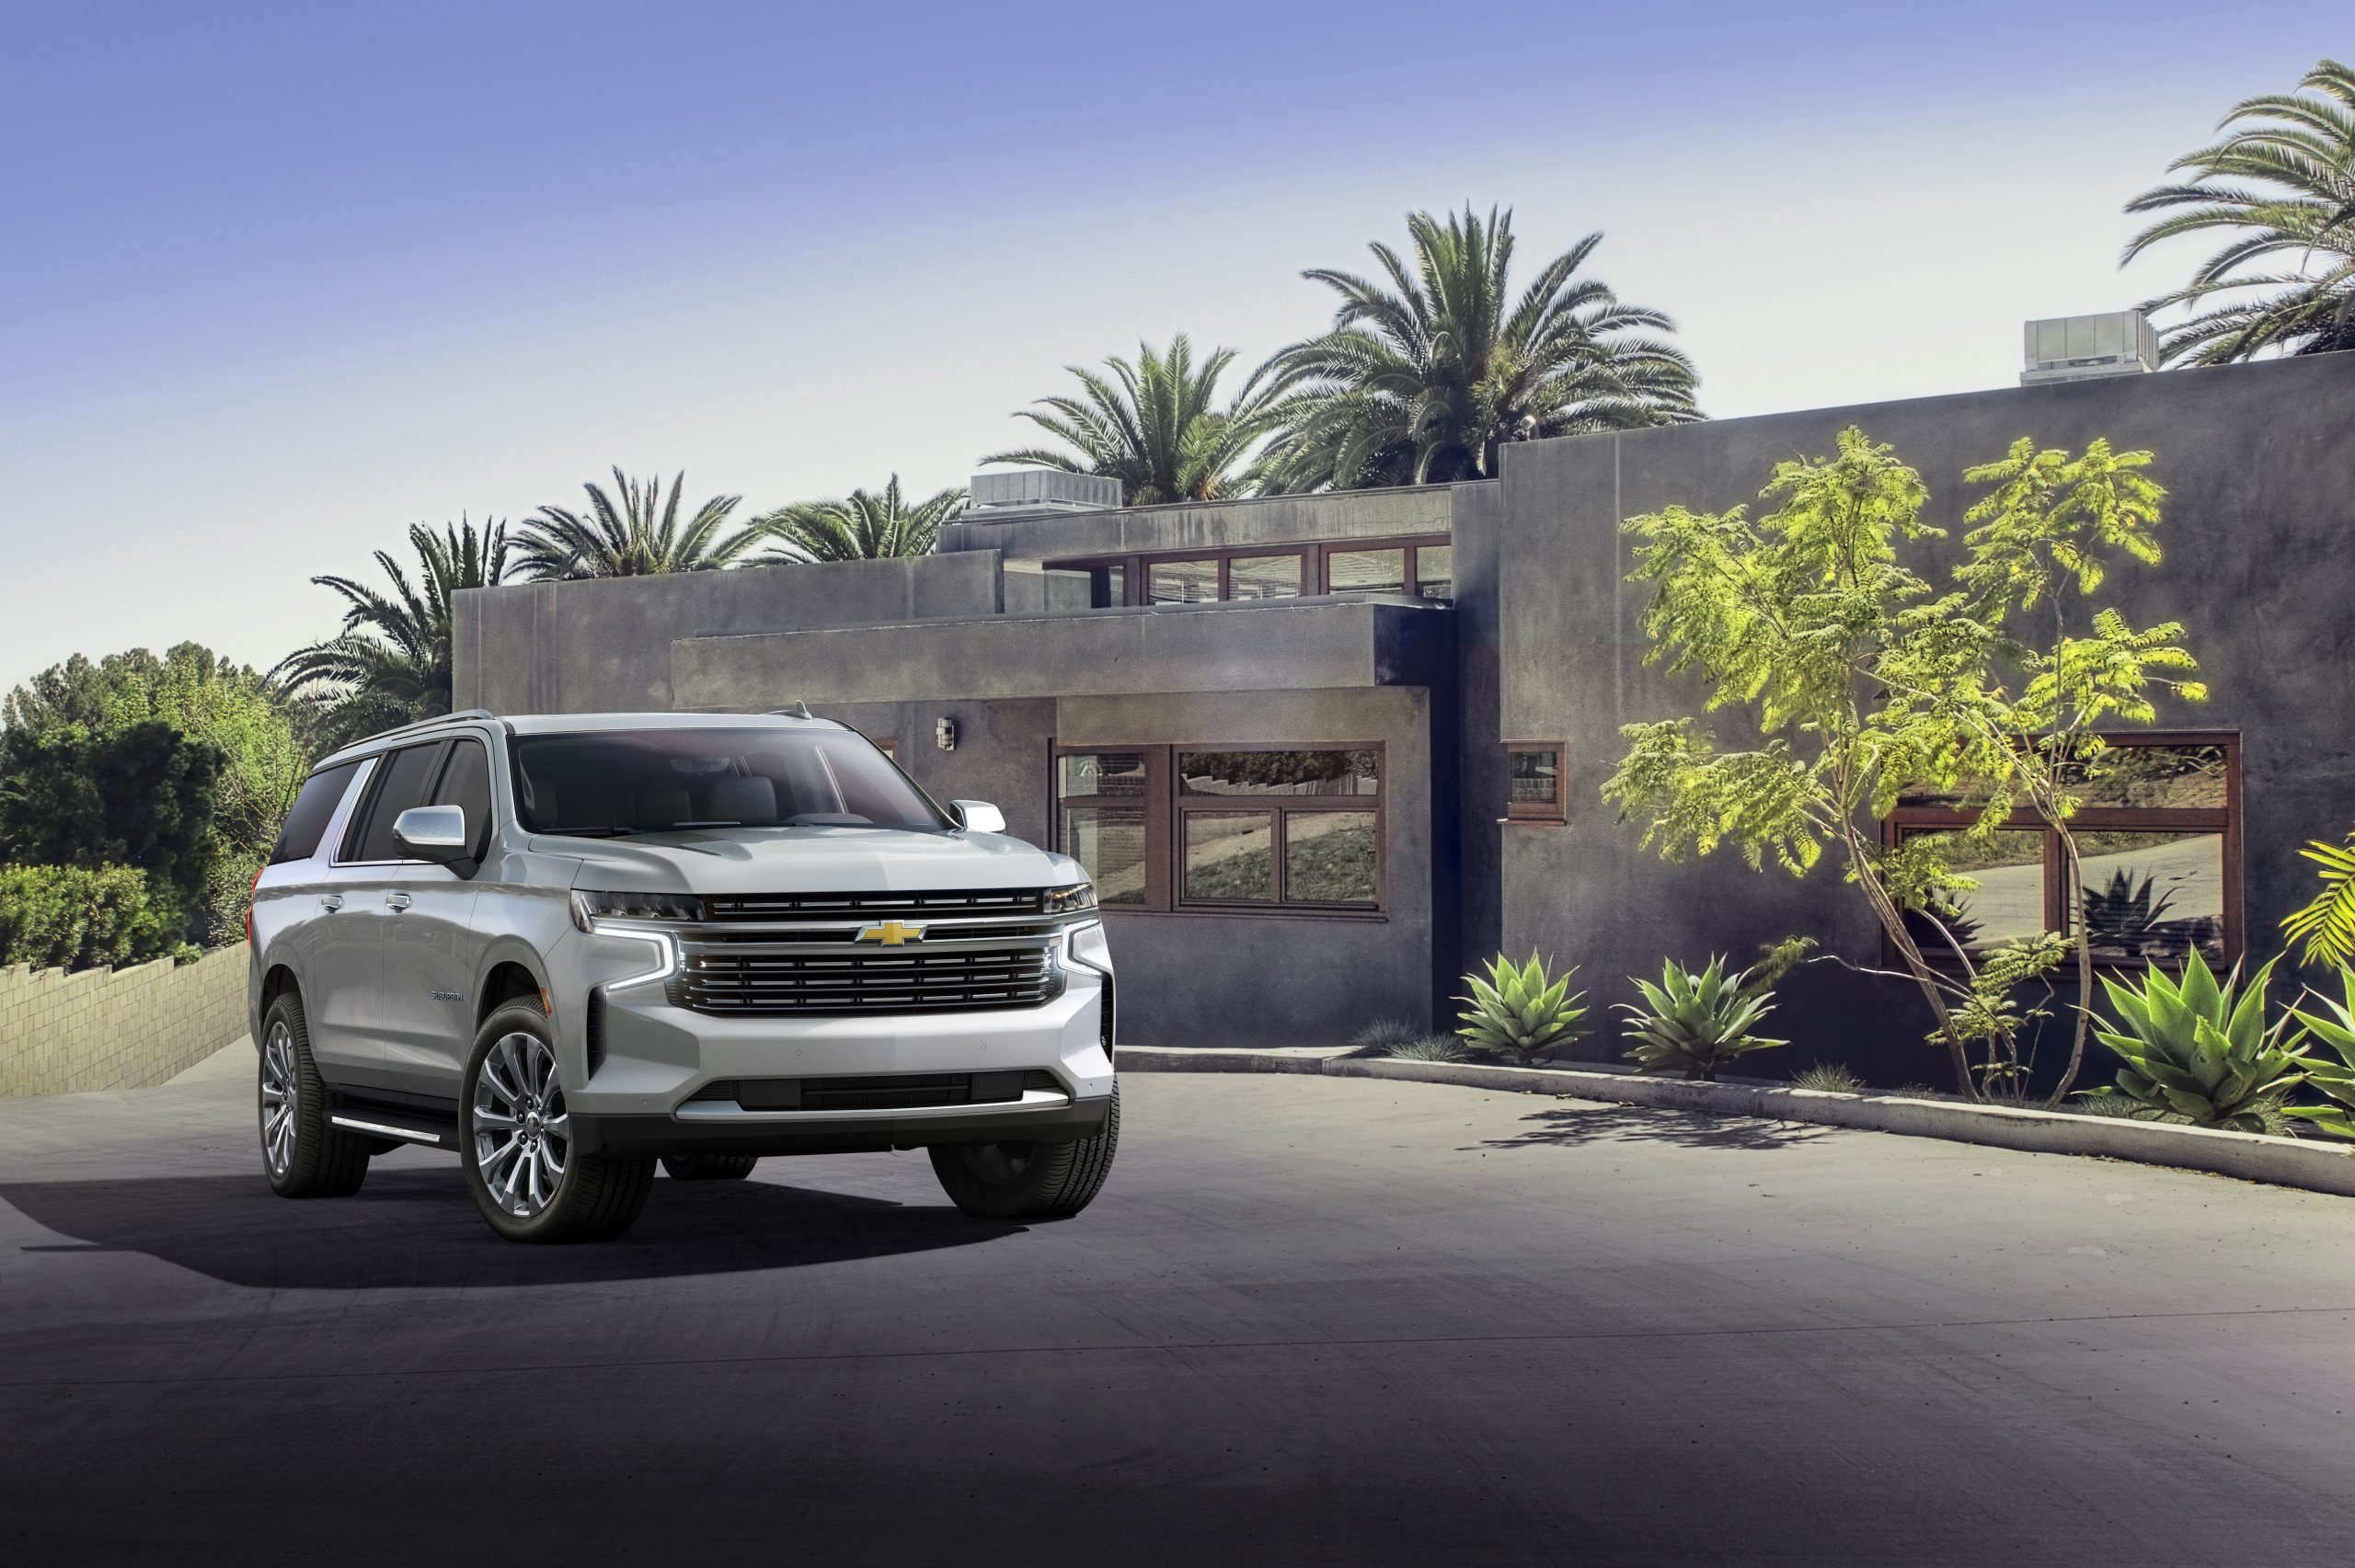 Chevrolet Introduces All-New 2021 Tahoe And Suburban 2021 Chevy Silverado 1500 Interior Colors, Jump Seat, In Stock